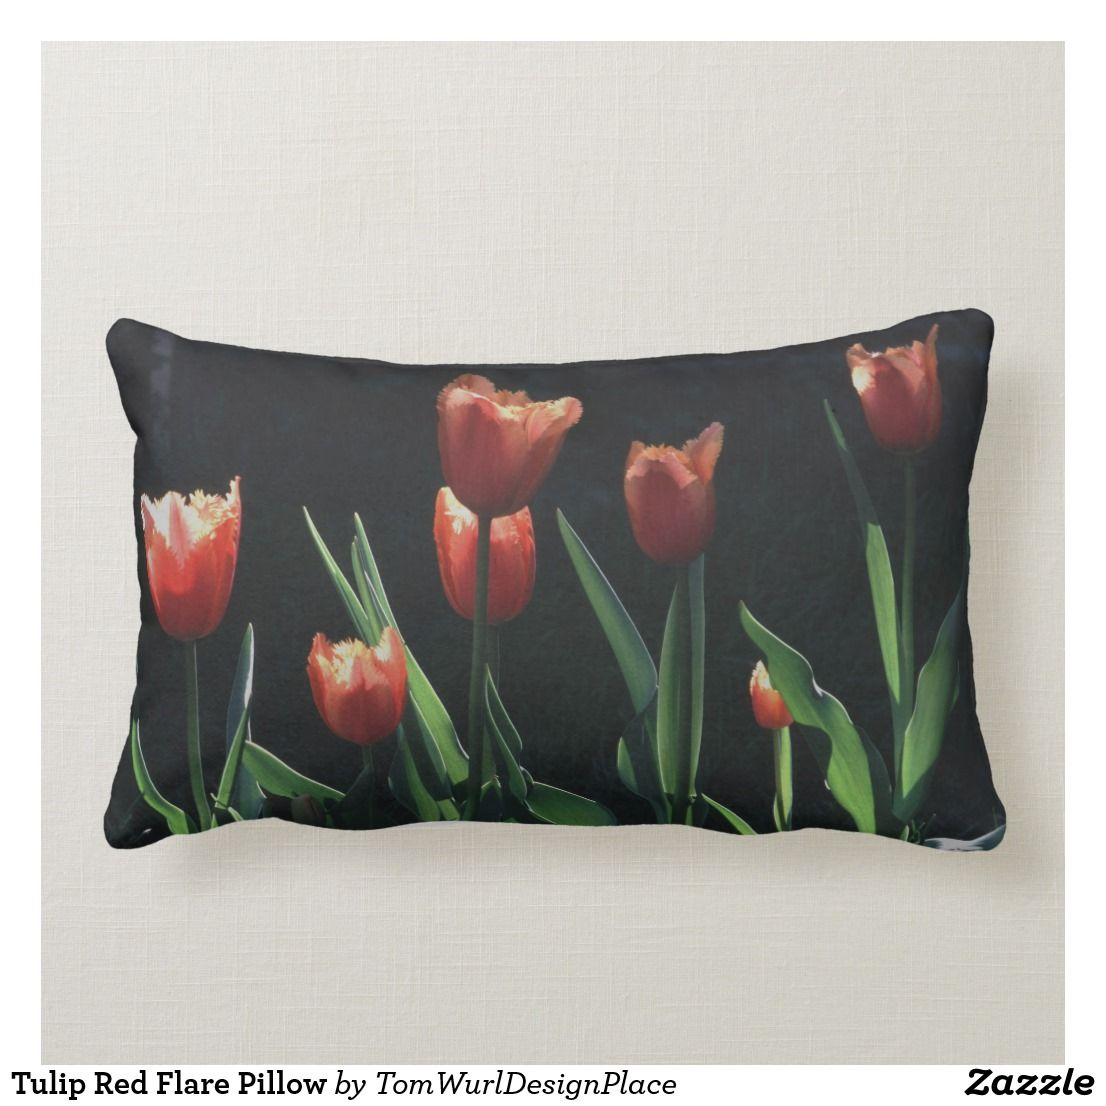 Tulip Red Flare Pillow Red Decorative Pillows Pillows Decorative Throw Pillows